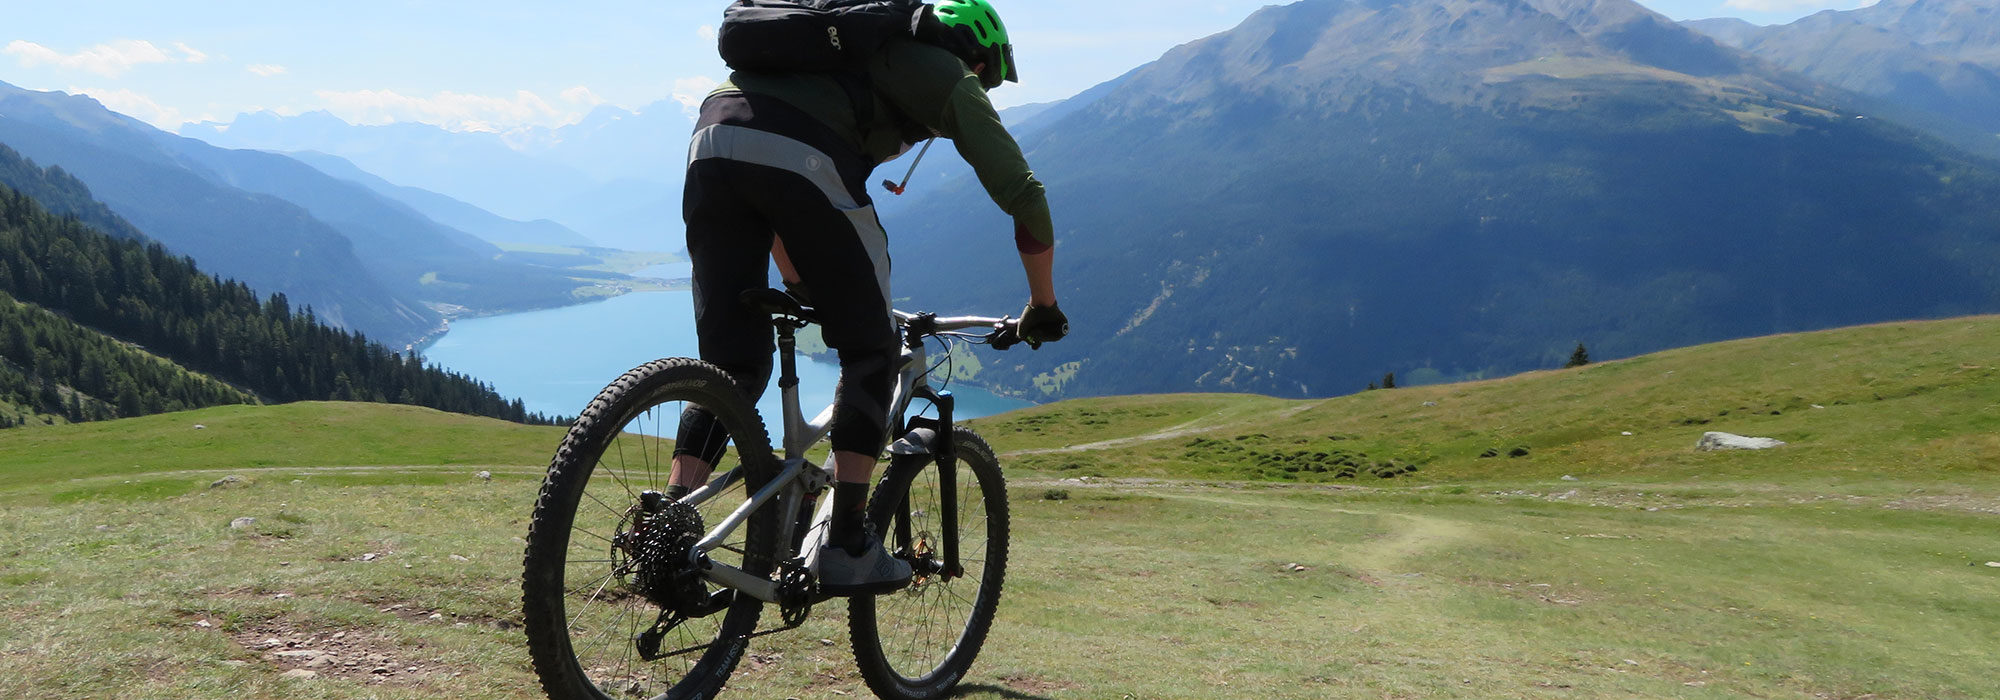 mountainbike-adventures, mtbclinic, mountainbikevakantie, mtbvakantie, mtb, weekend, fietsvakantie, mtbtrip, trails, mountainbikereizen, transalp, mont ventoux, mont blanc, nauders, verbier, all-inclusive